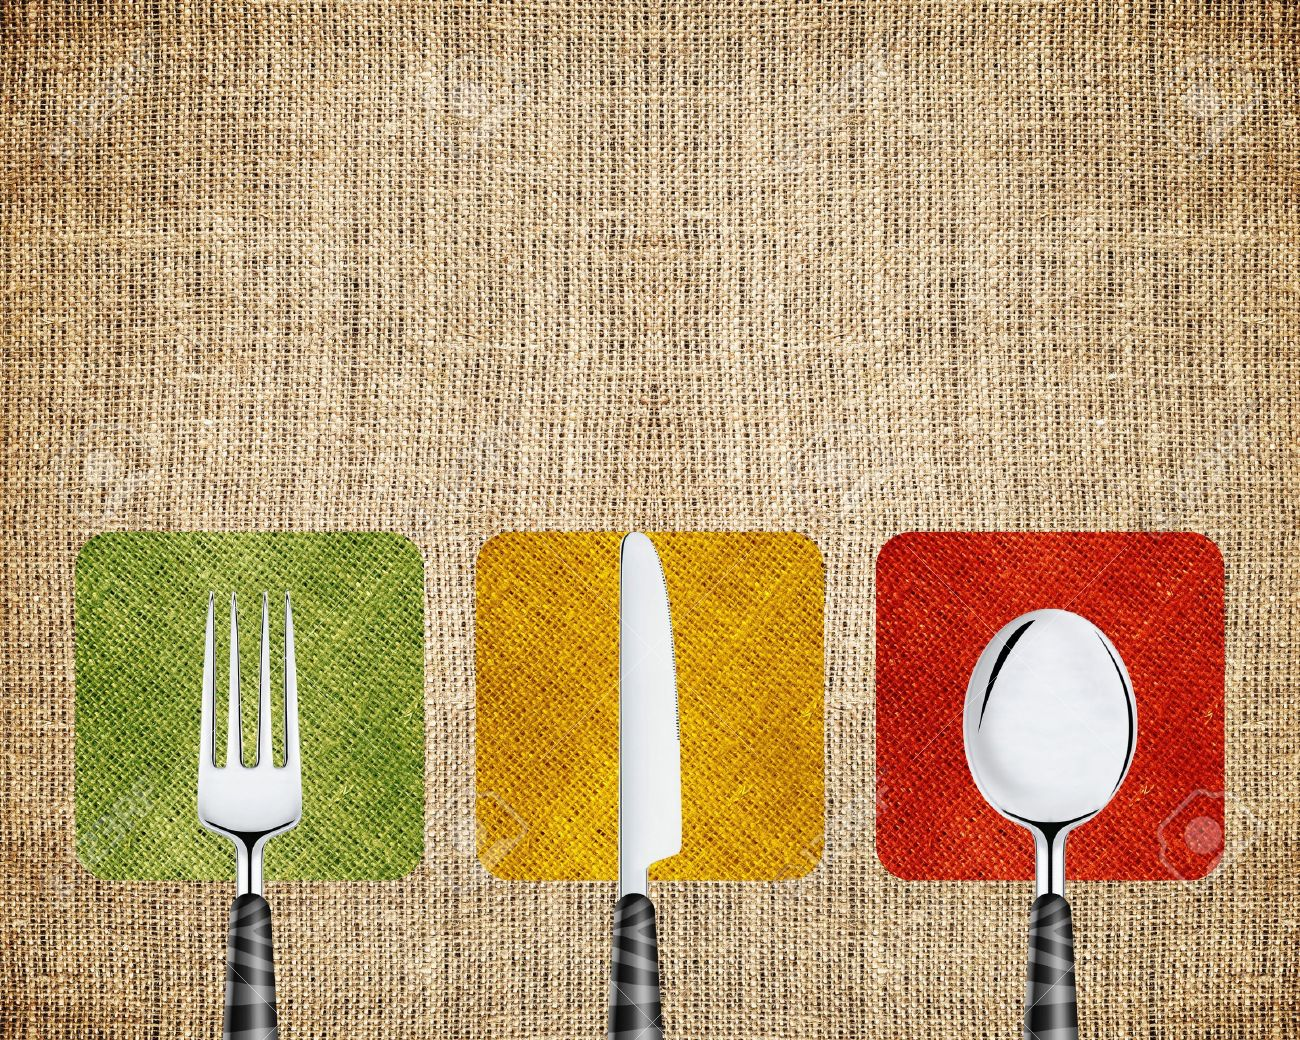 Restaurant menu cover design with knife, spoon and fork. Stock Photo - 13605347